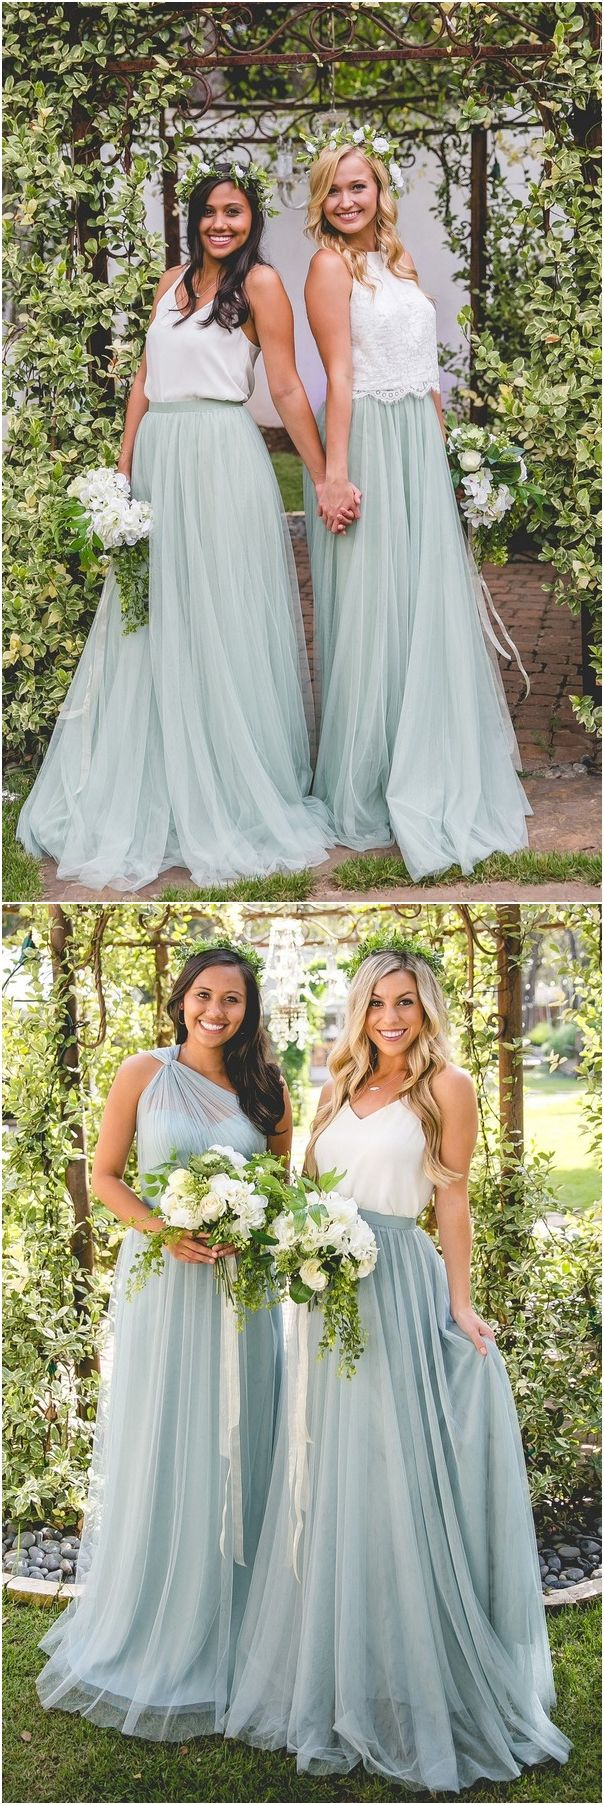 226 best bridesmaids images on Pinterest | Bridal gowns, Bridesmaid ...